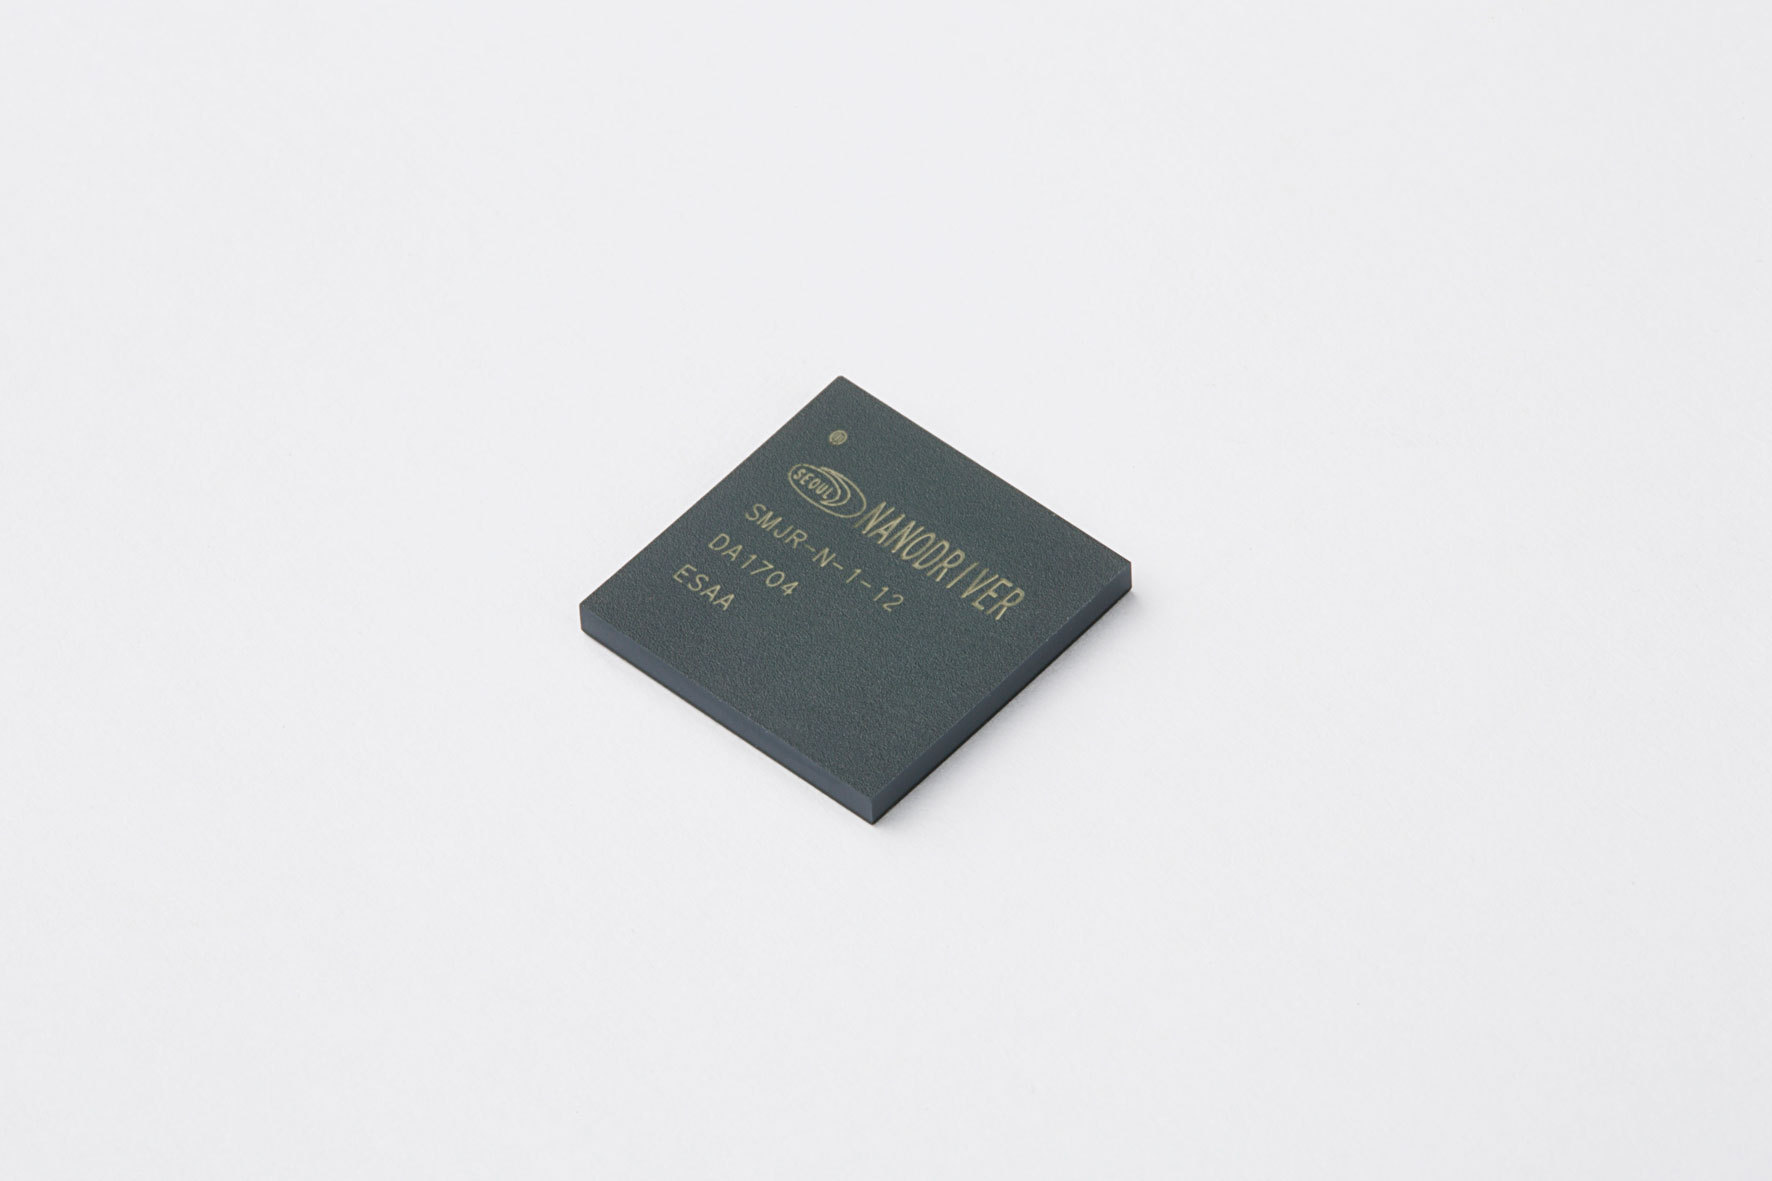 Seoul Semiconductor NanoDriver Series - LED Driver (Photo: Business Wire)